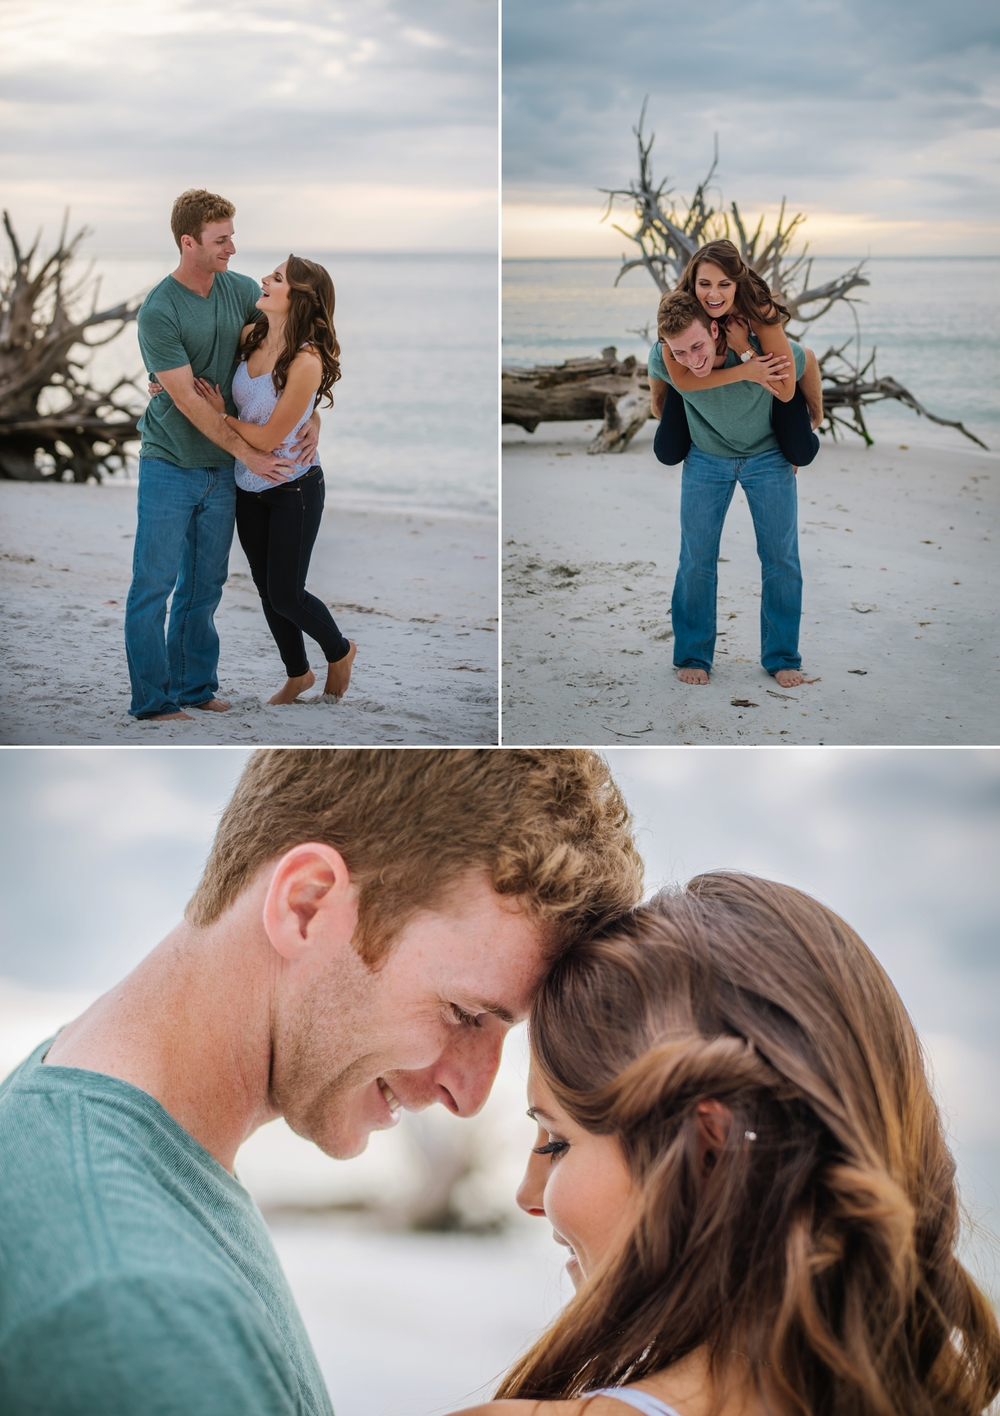 tampa-engagement-photography-ashlee-hamon_0005.jpg